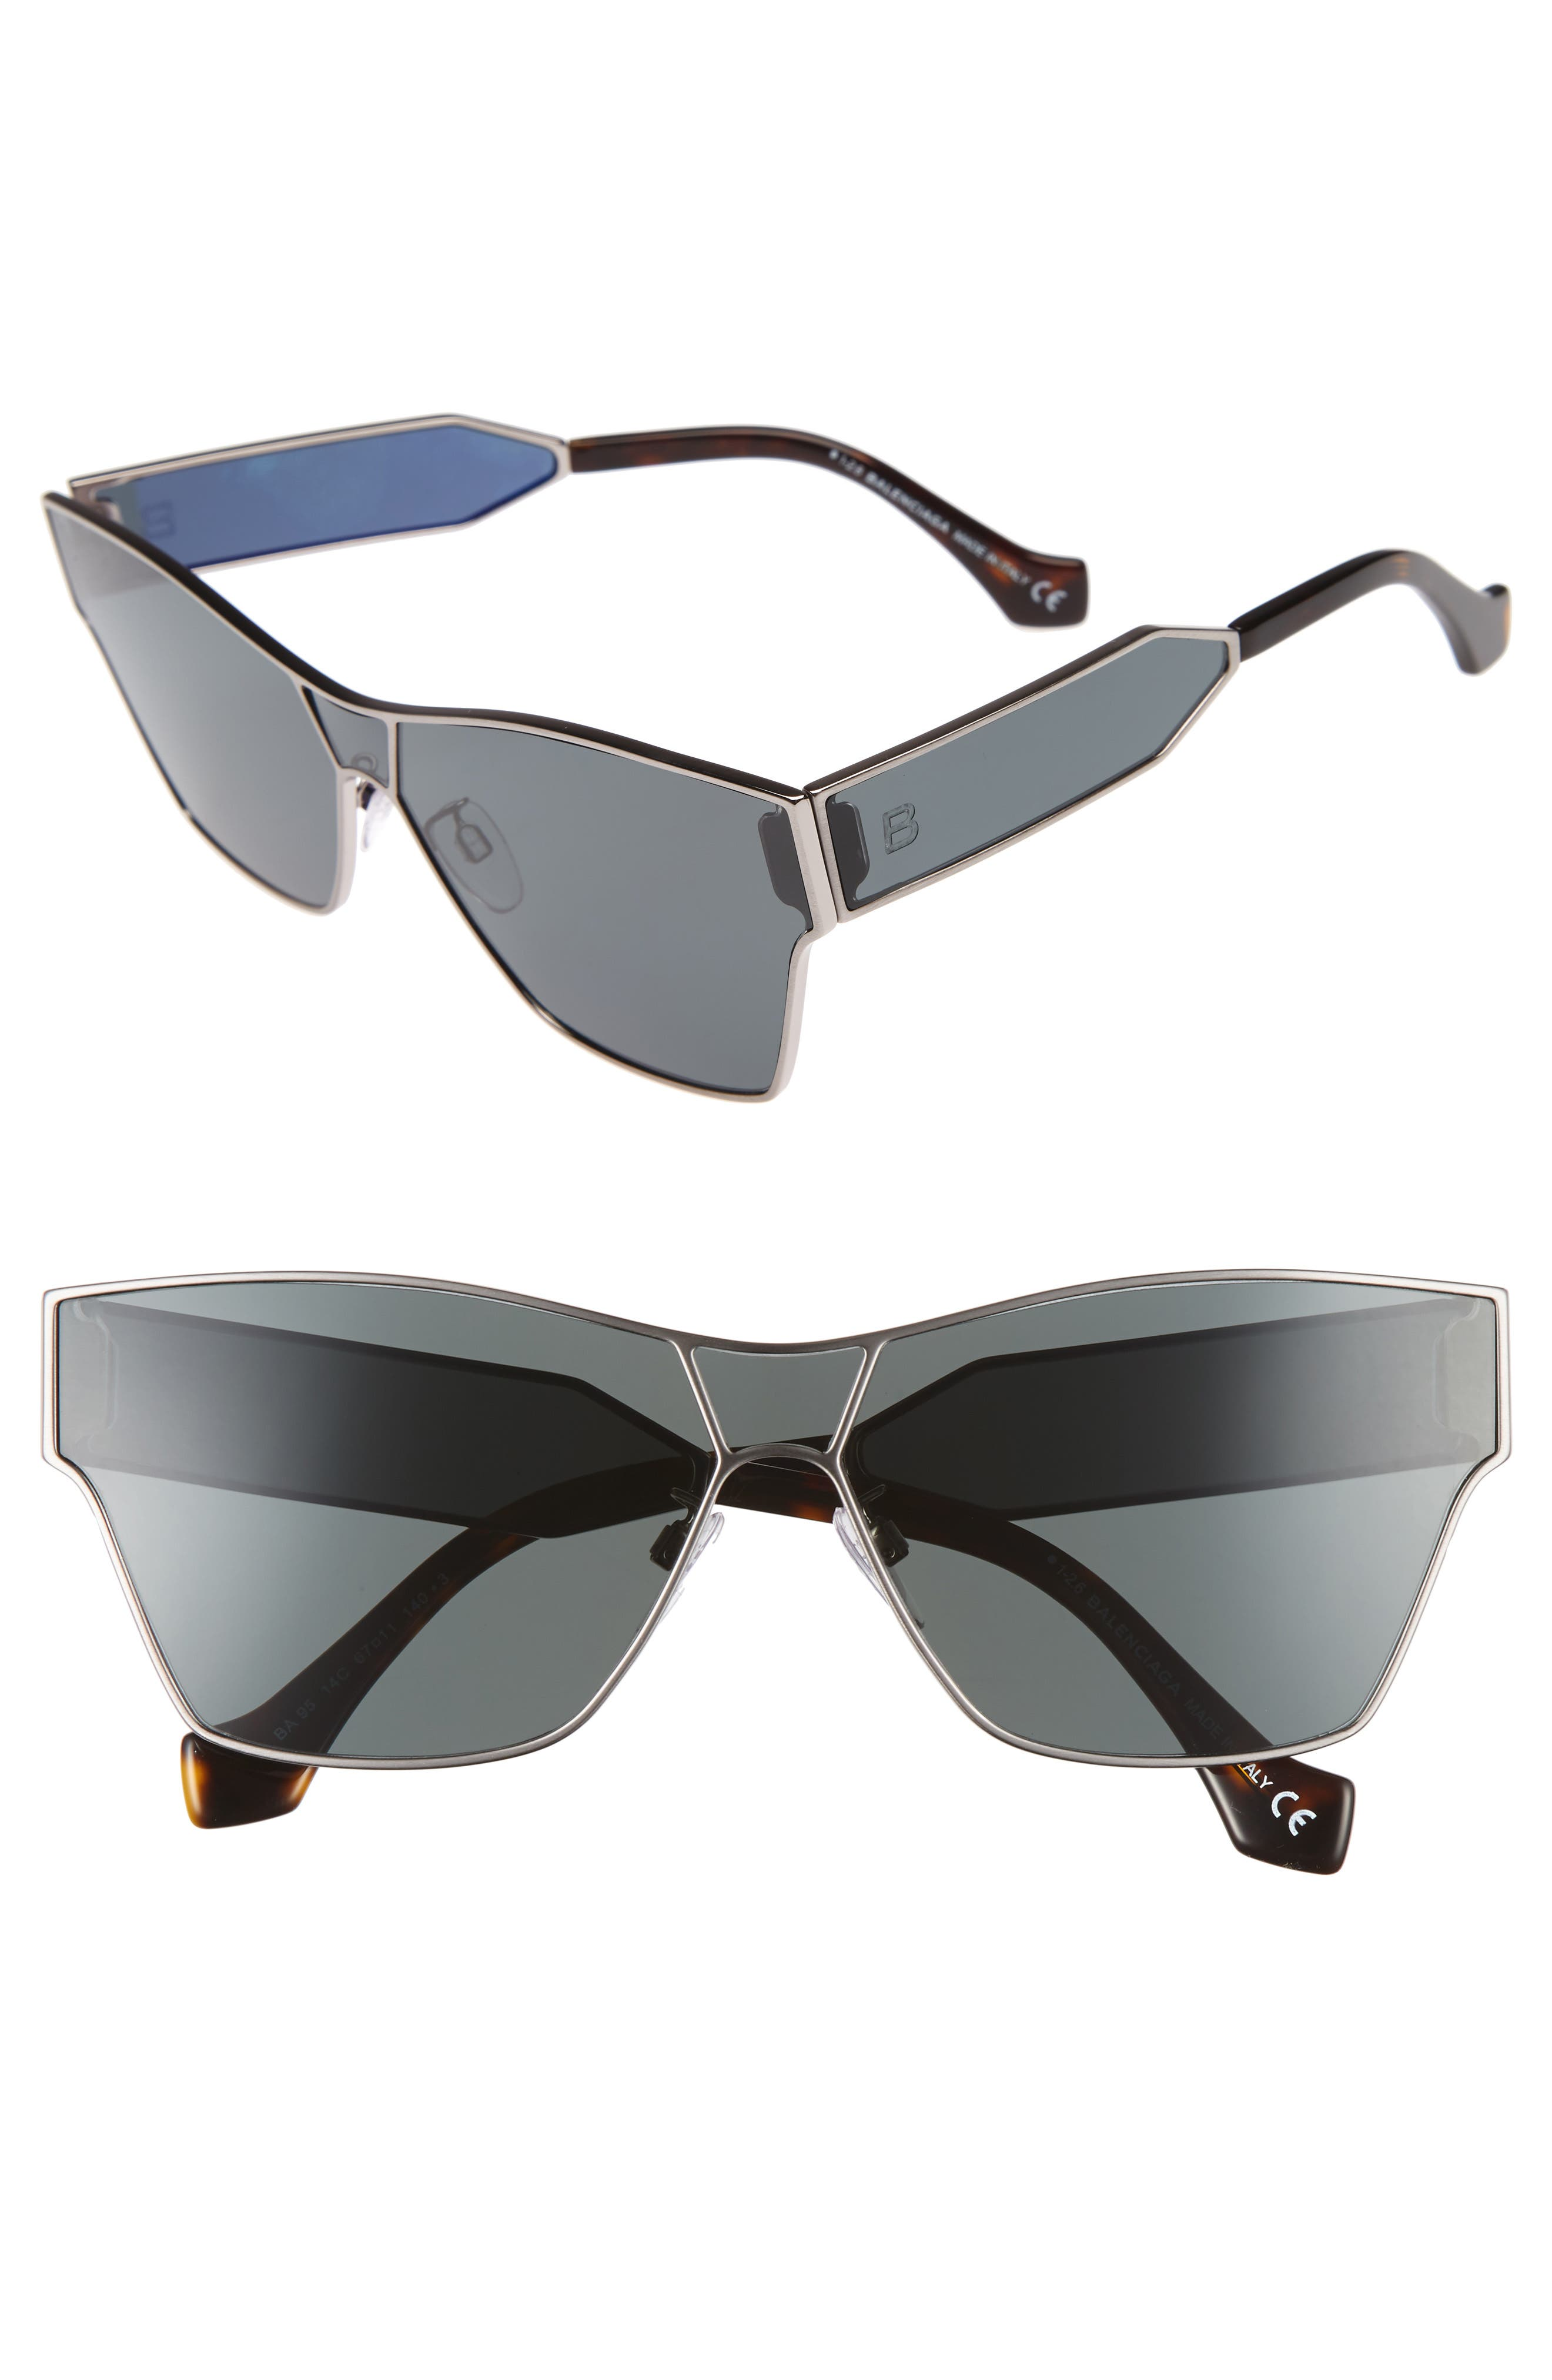 67mm Sunglasses,                         Main,                         color, RUTHENIUM FRONT/ DARK HAVANA